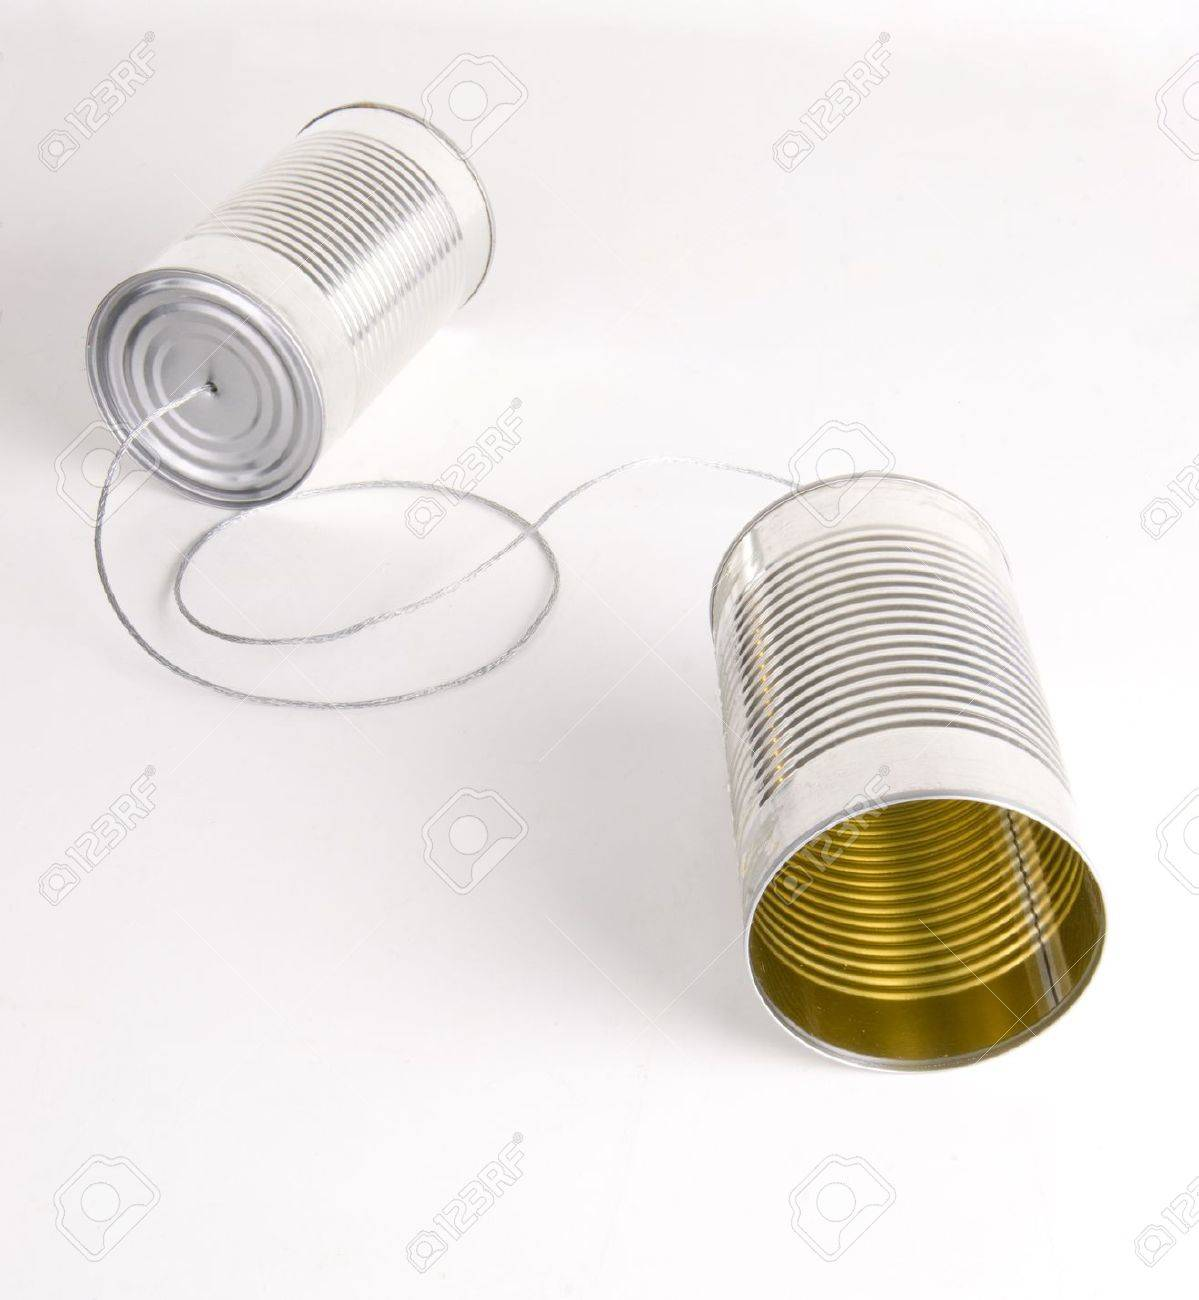 Two Cans Strung Together With Metal Wire Walkie Talkie Stock Photo ...